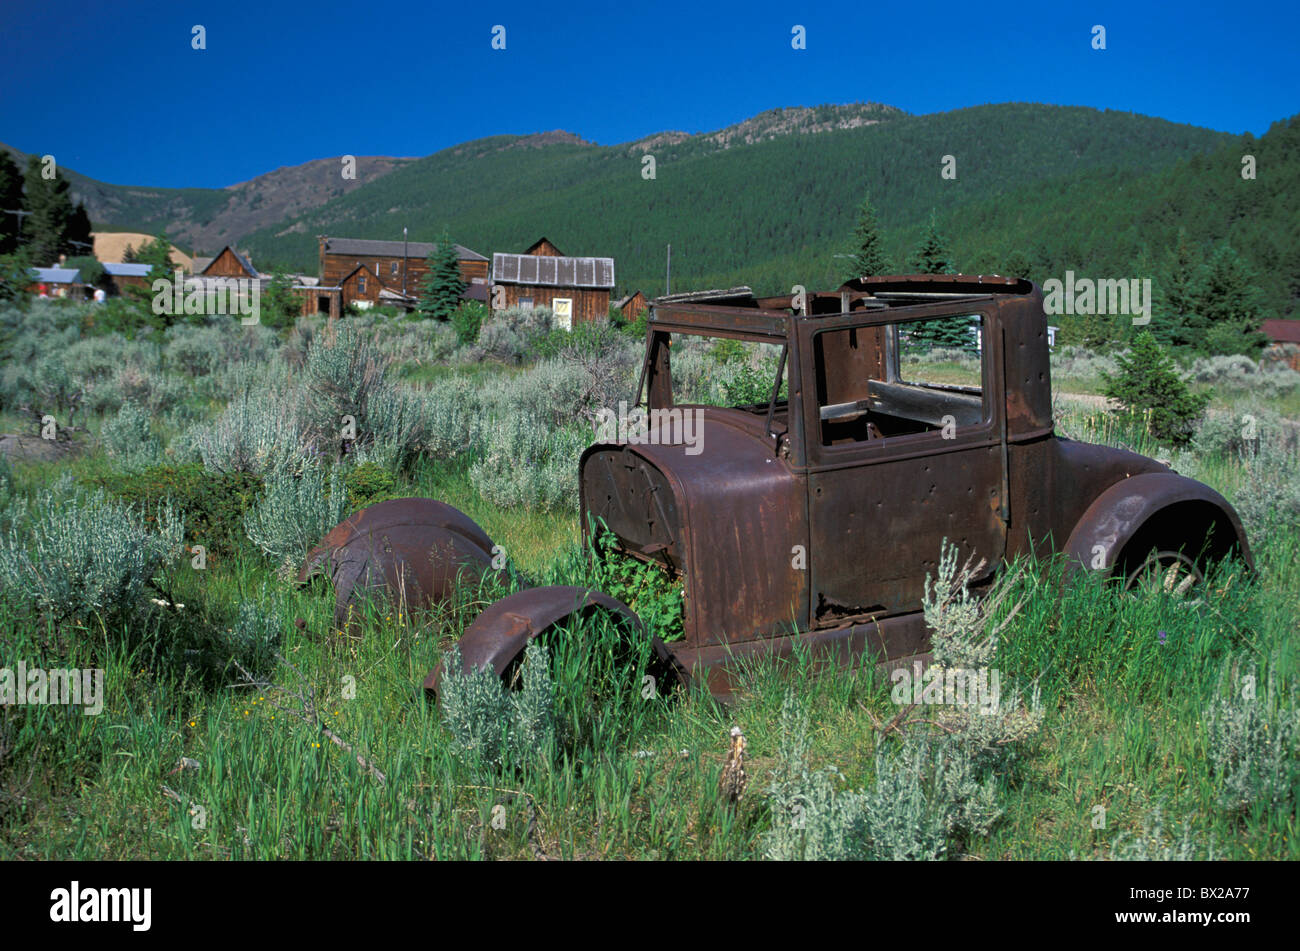 ghost town wreck scrap vehicle scrap metal rubbish settlement Elkhorn Ghost Town State monument monument Montana - Stock Image